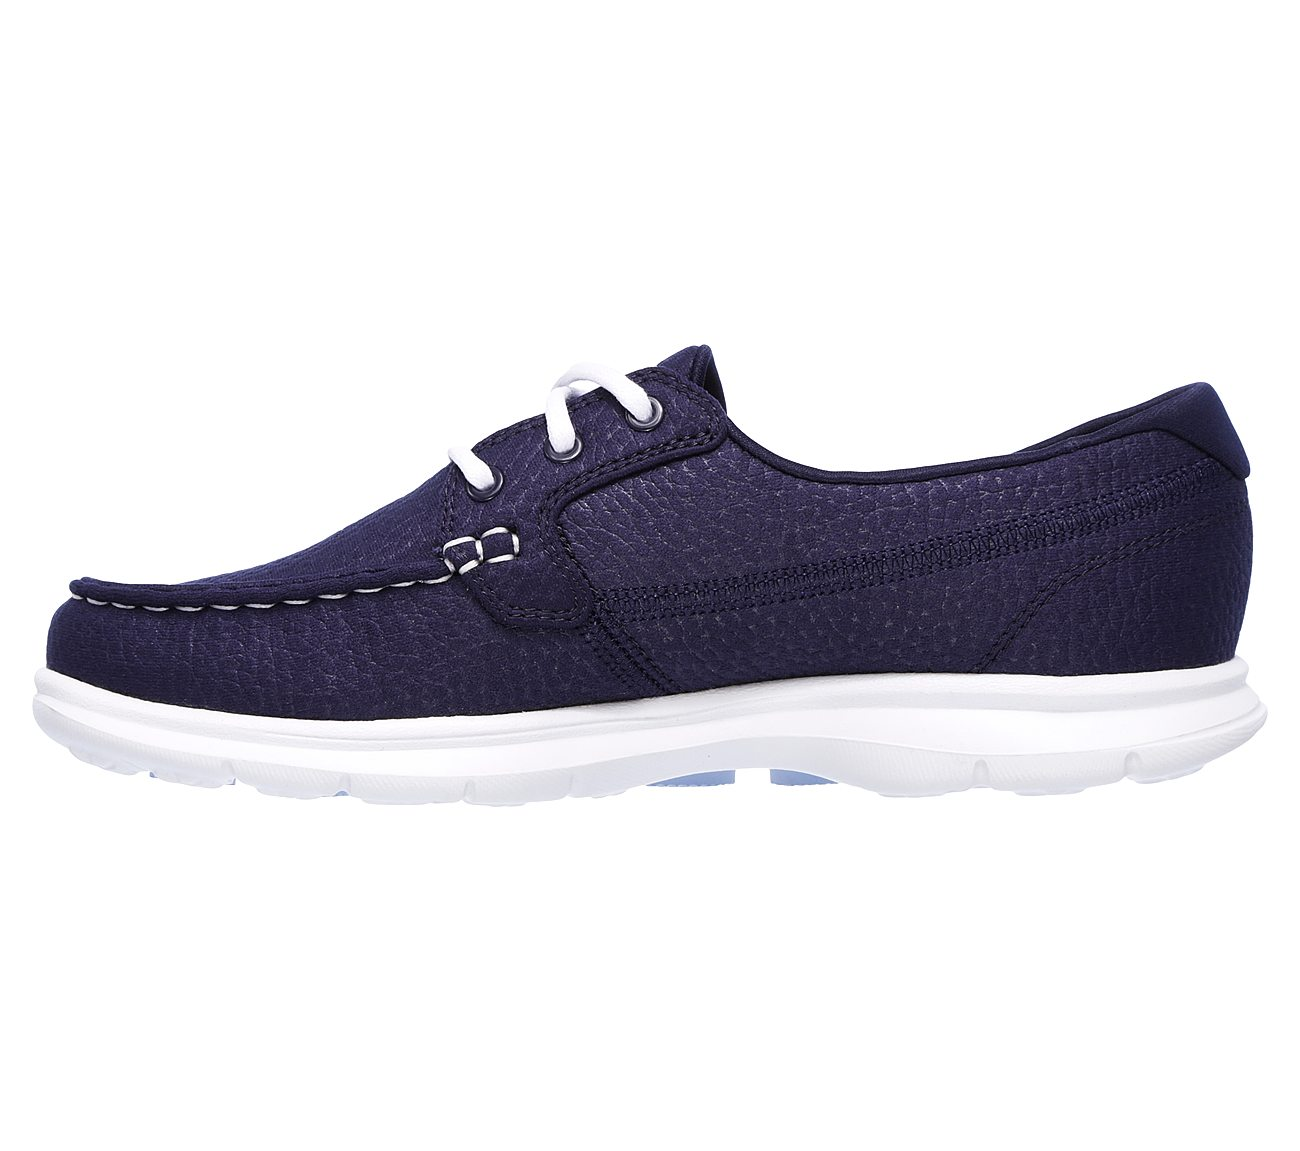 Skechers GO STEP Riptide